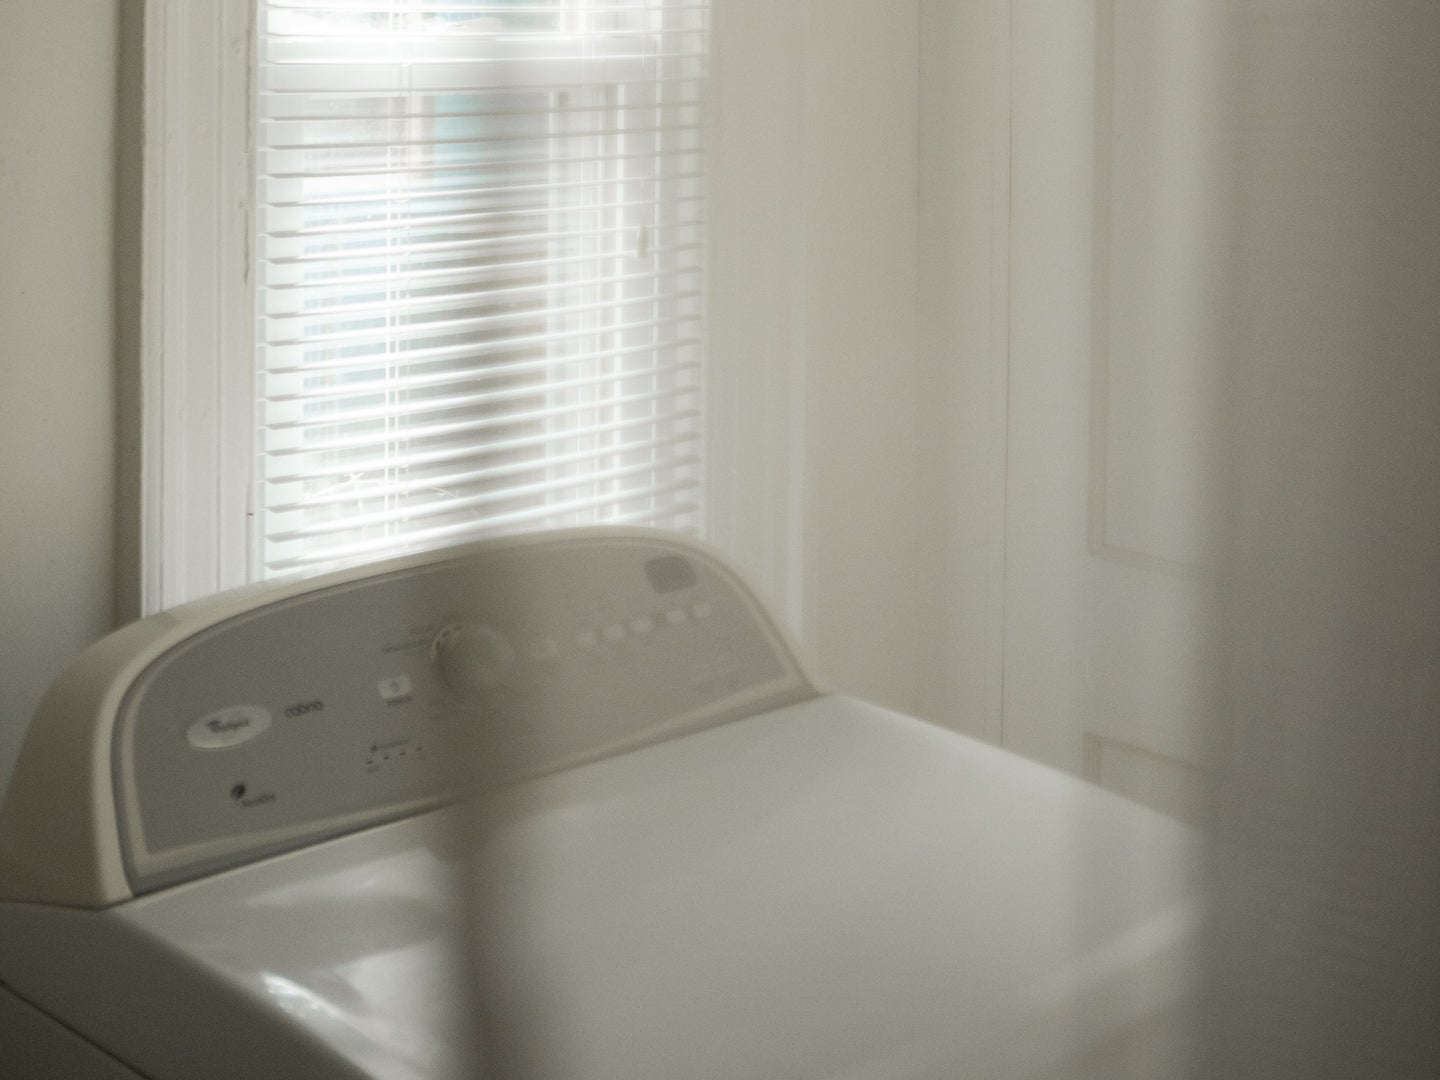 A white clothes dryer behind a white curtain, in front of a tall window with sunlight shining through.